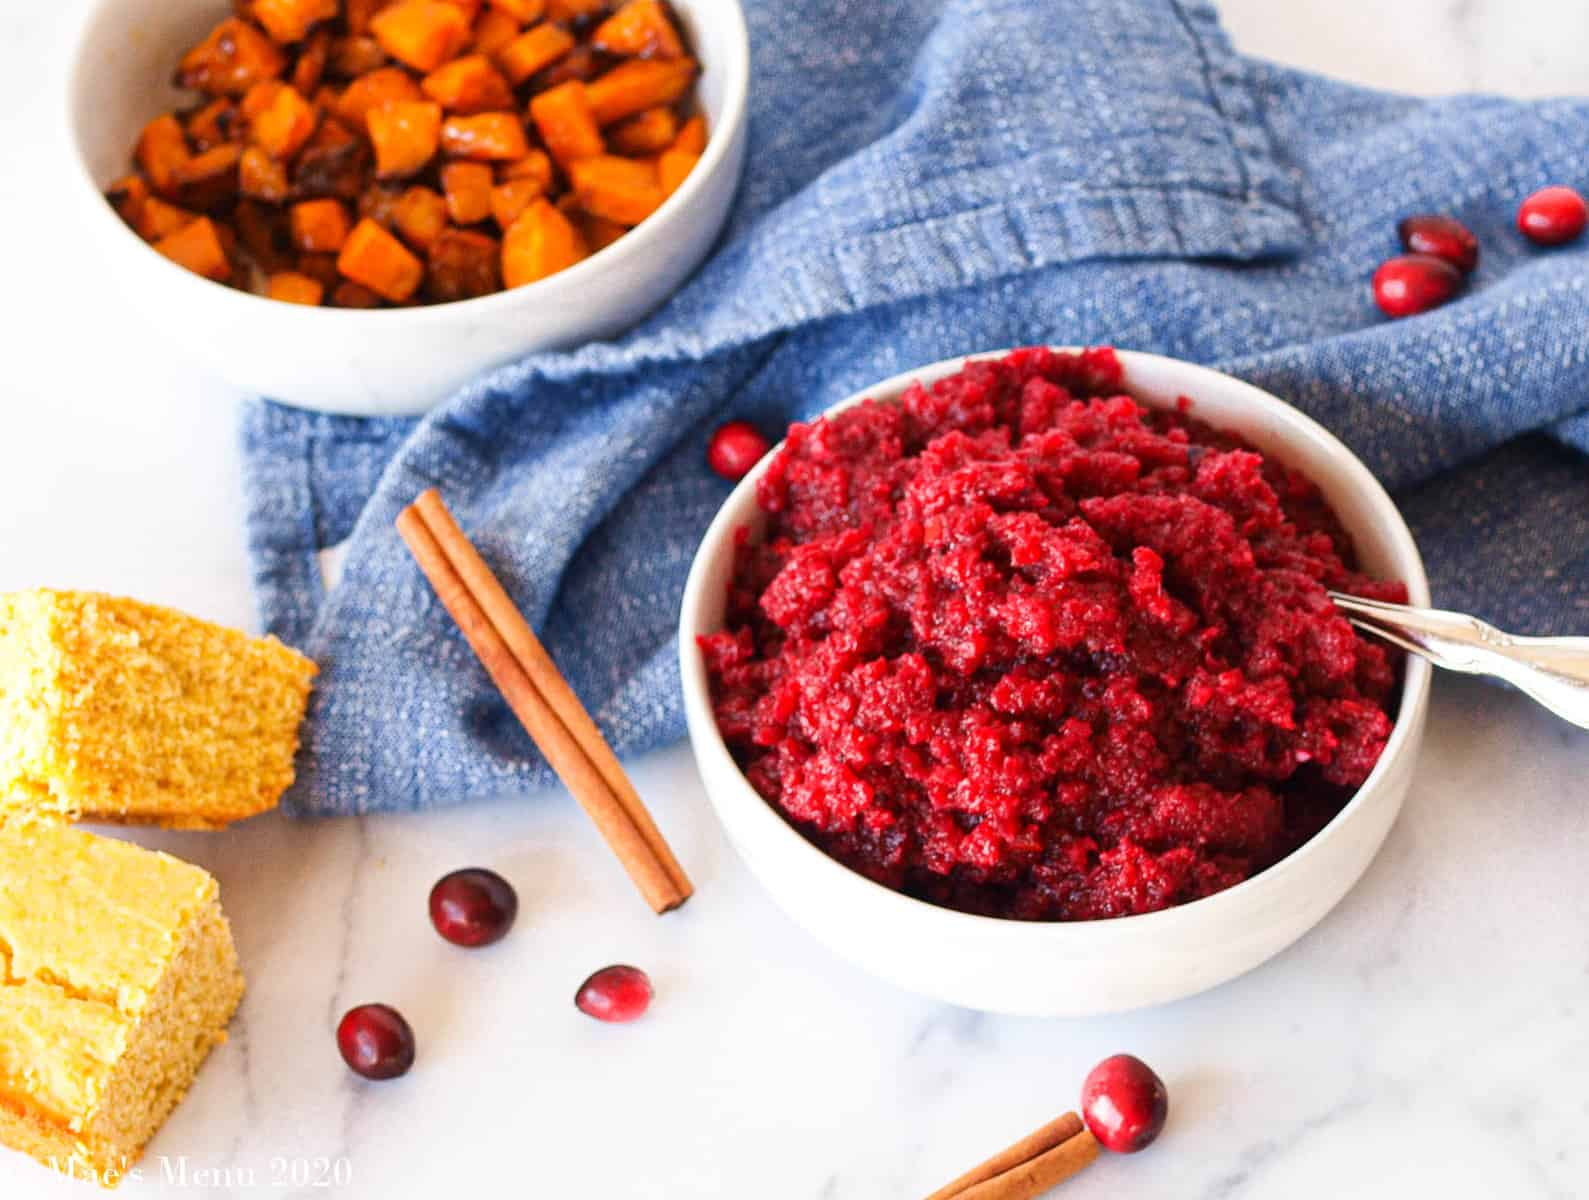 A bowl of apple cranberry sauce next to pieces of cornbread, a bowl of air fryer butternut squash, cinnamon sticks, and cranberries